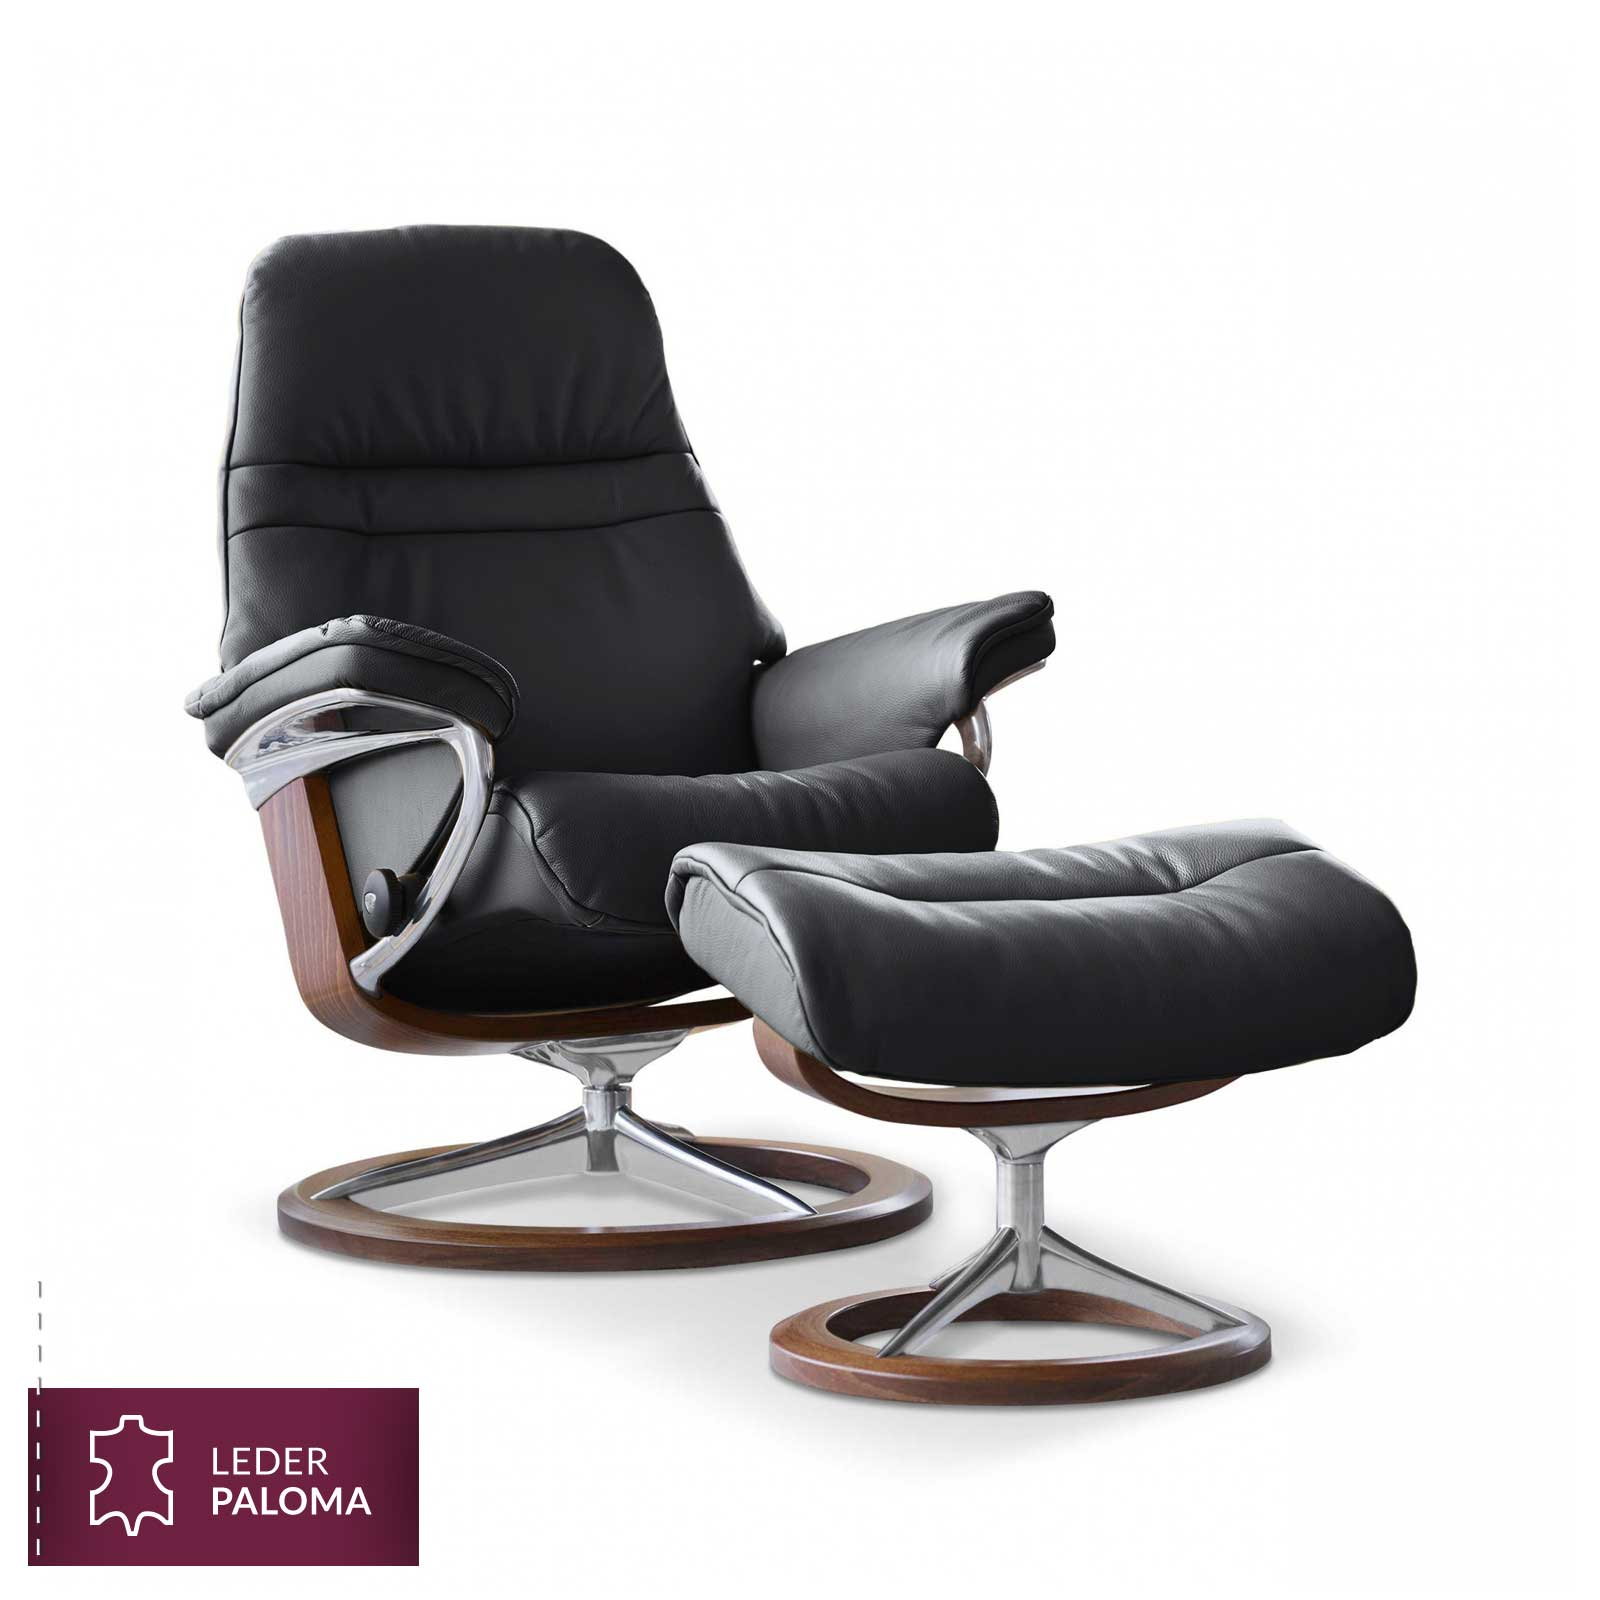 Stressless angebote relaxsessel stressless online shop for Stressless sessel modelle